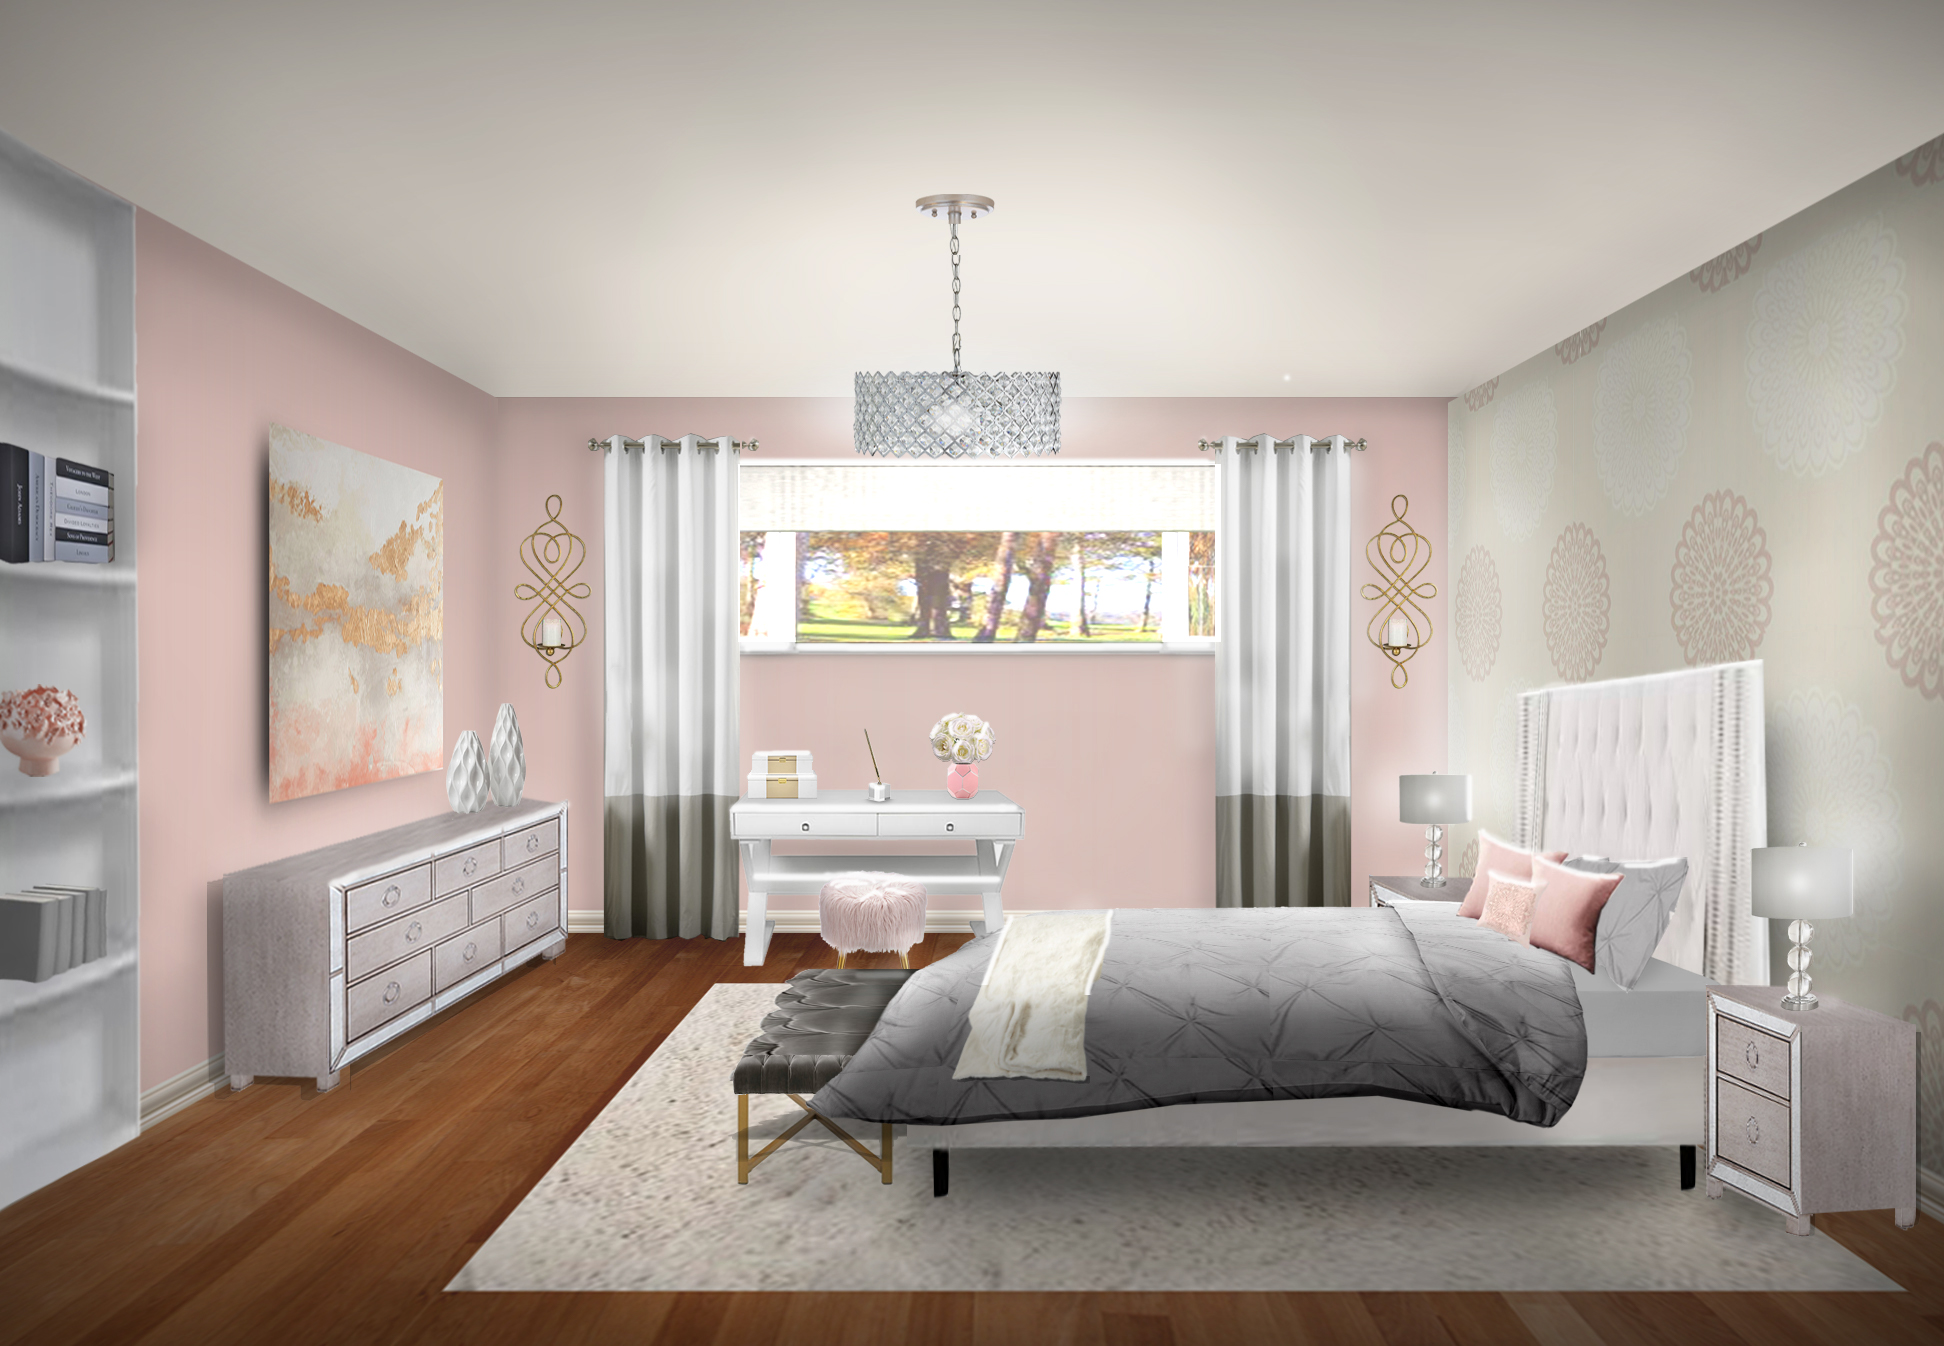 3d room photoshop-interior design